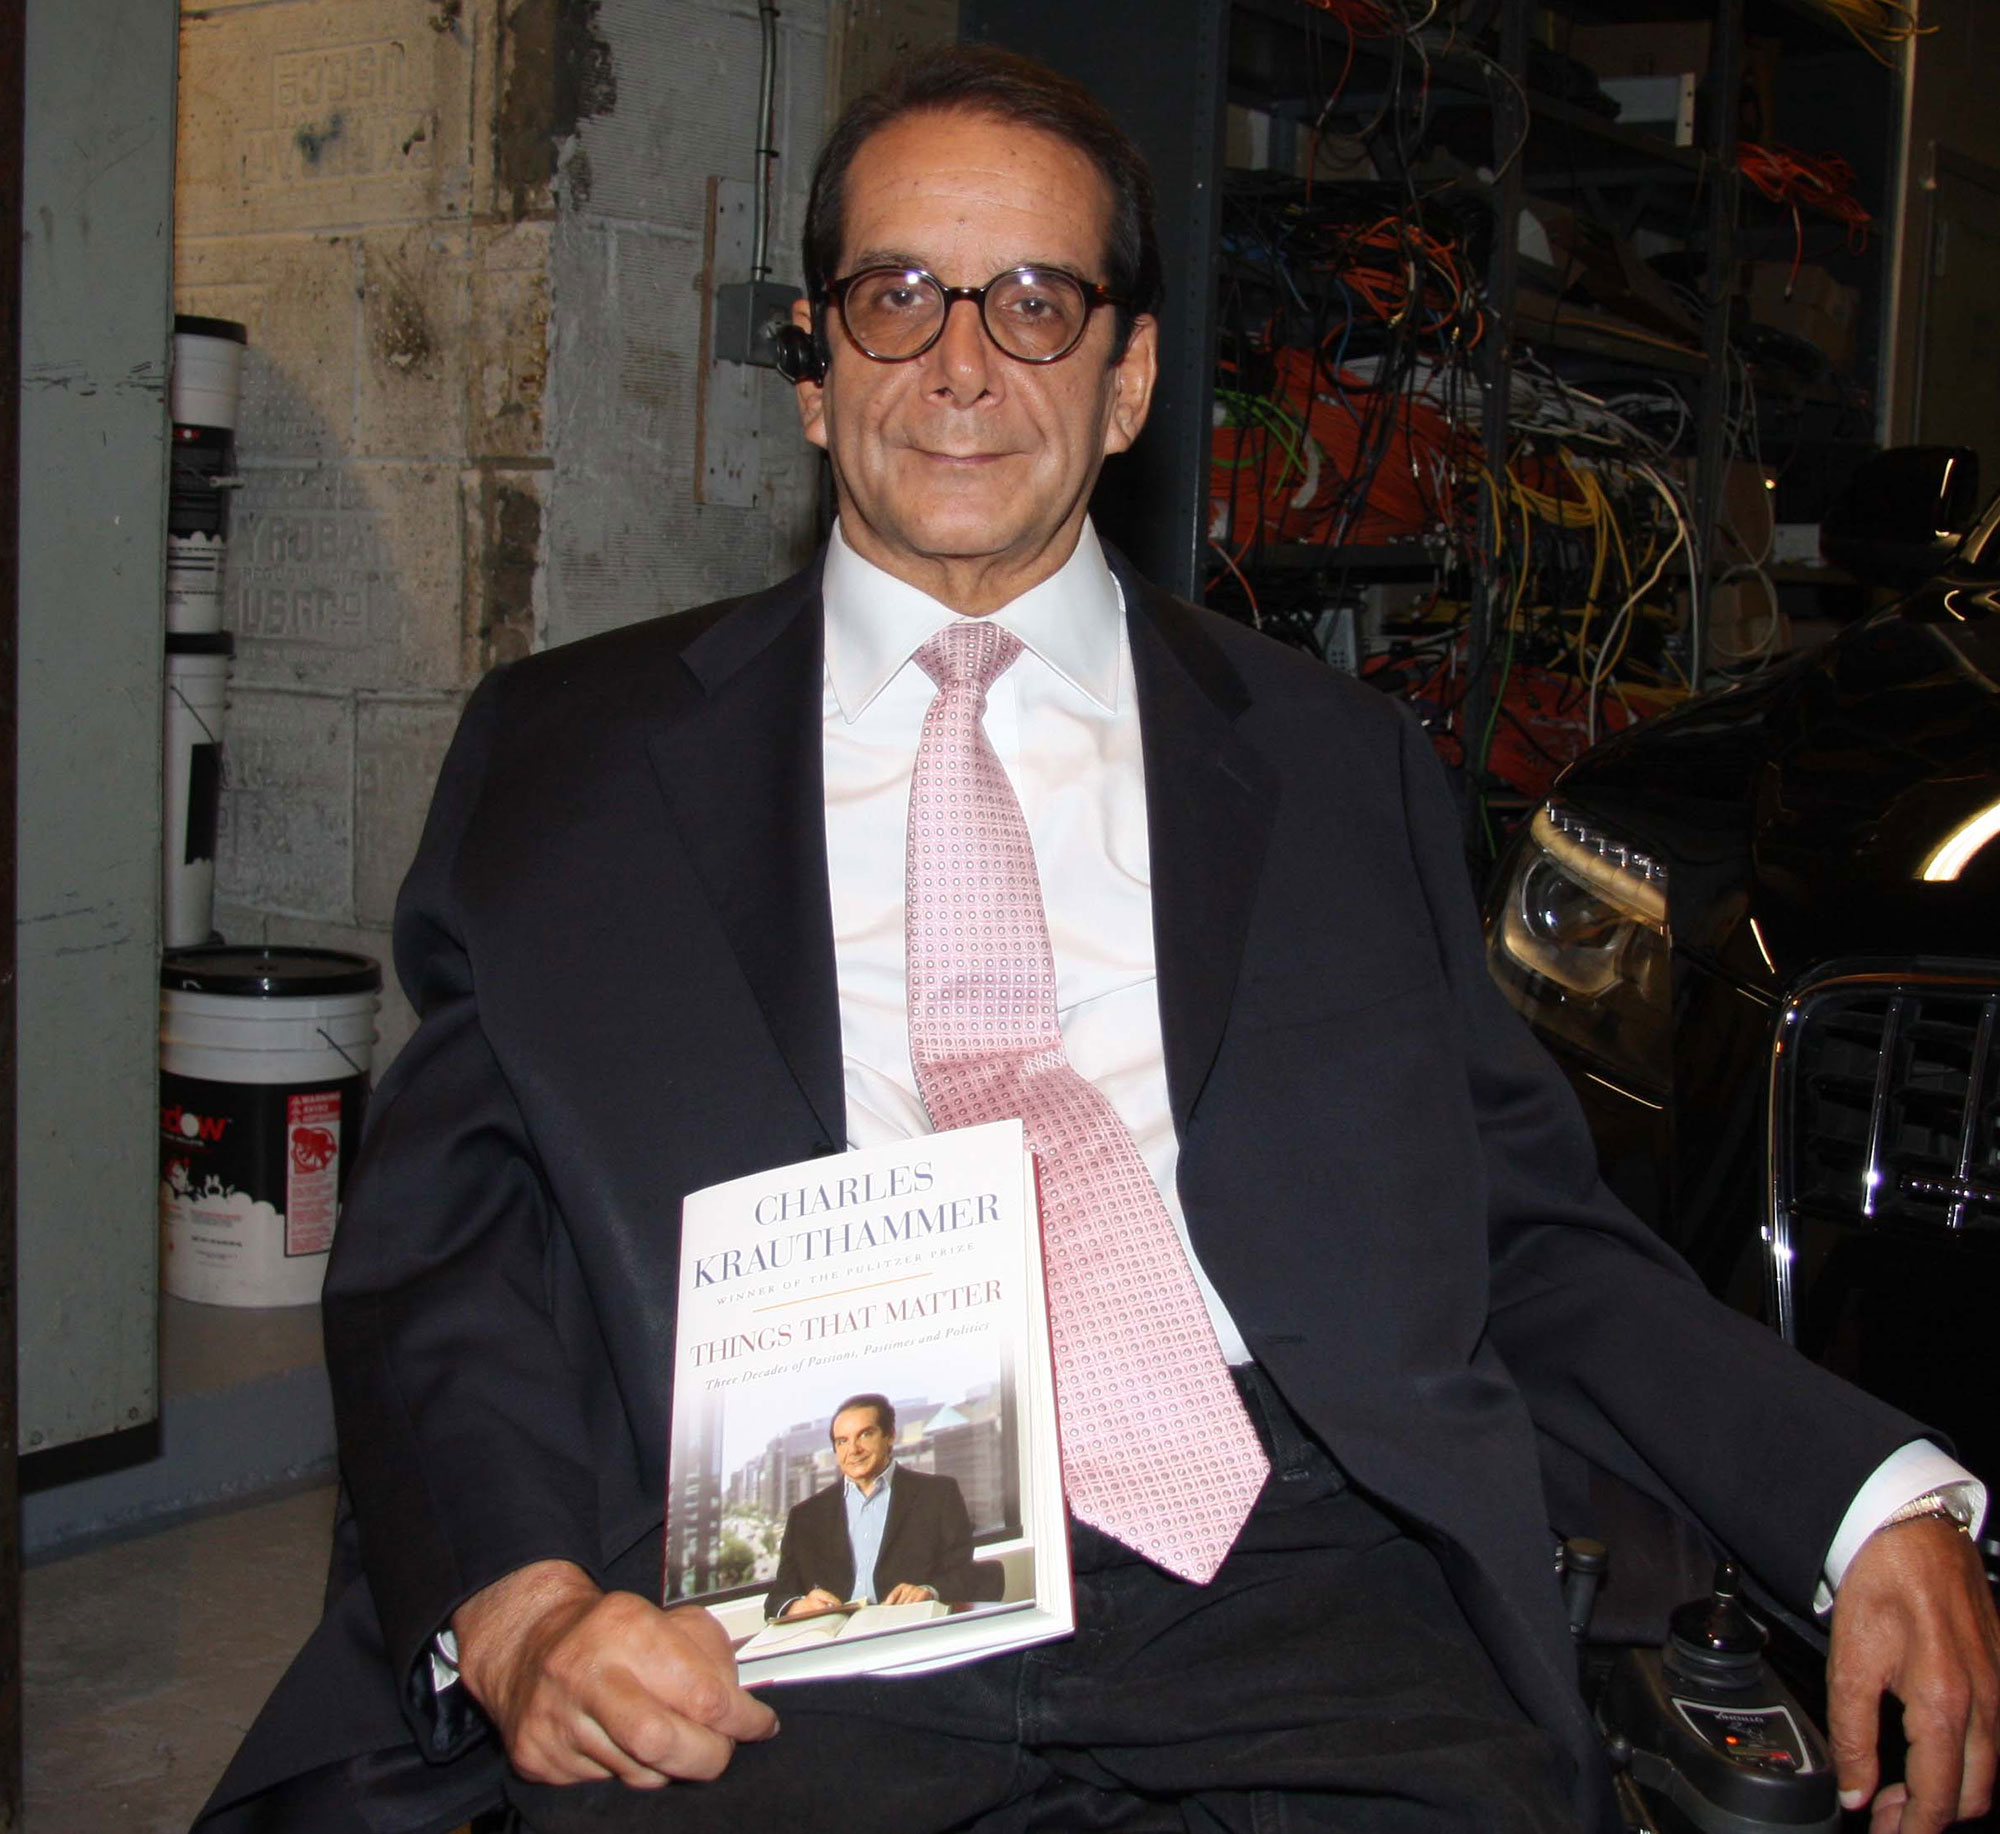 Charles Krauthammer  is sitting with a book on his hand